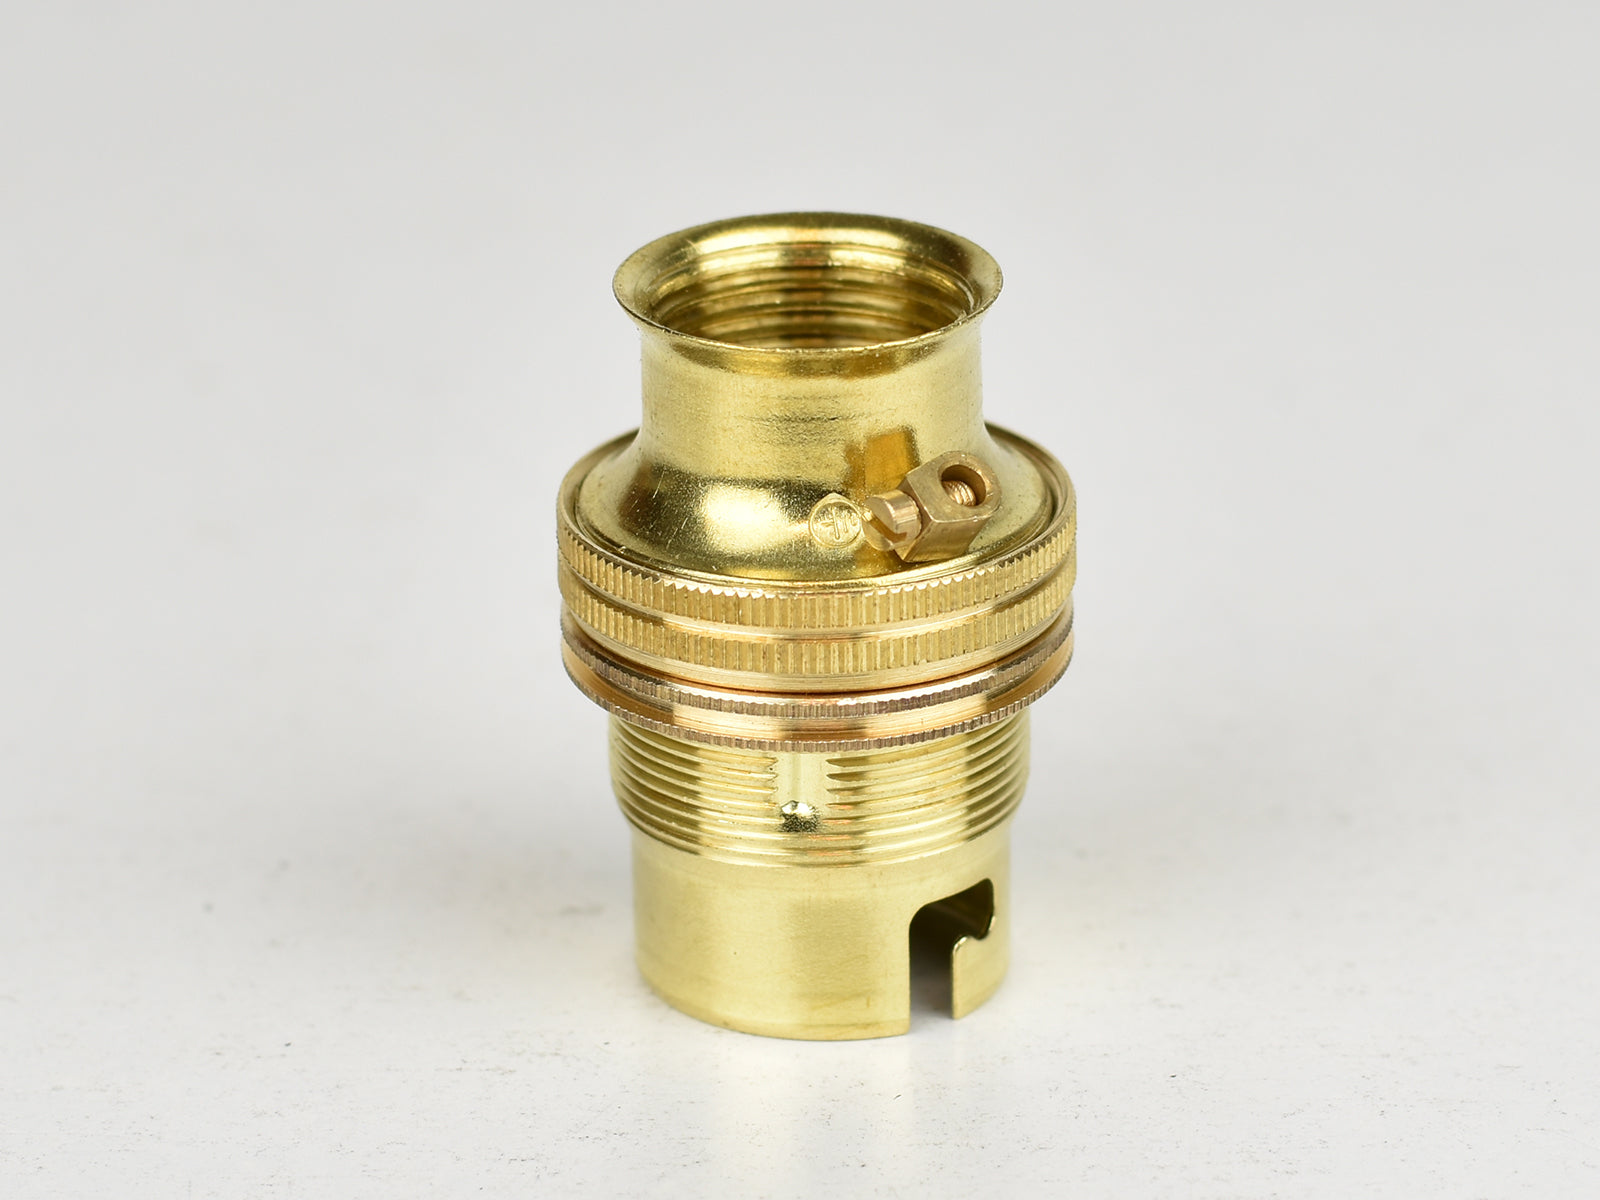 B22 Brass Bulb Holder | 20mm Conduit Fitting | Threaded Brass - Vendimia Lighting Co.